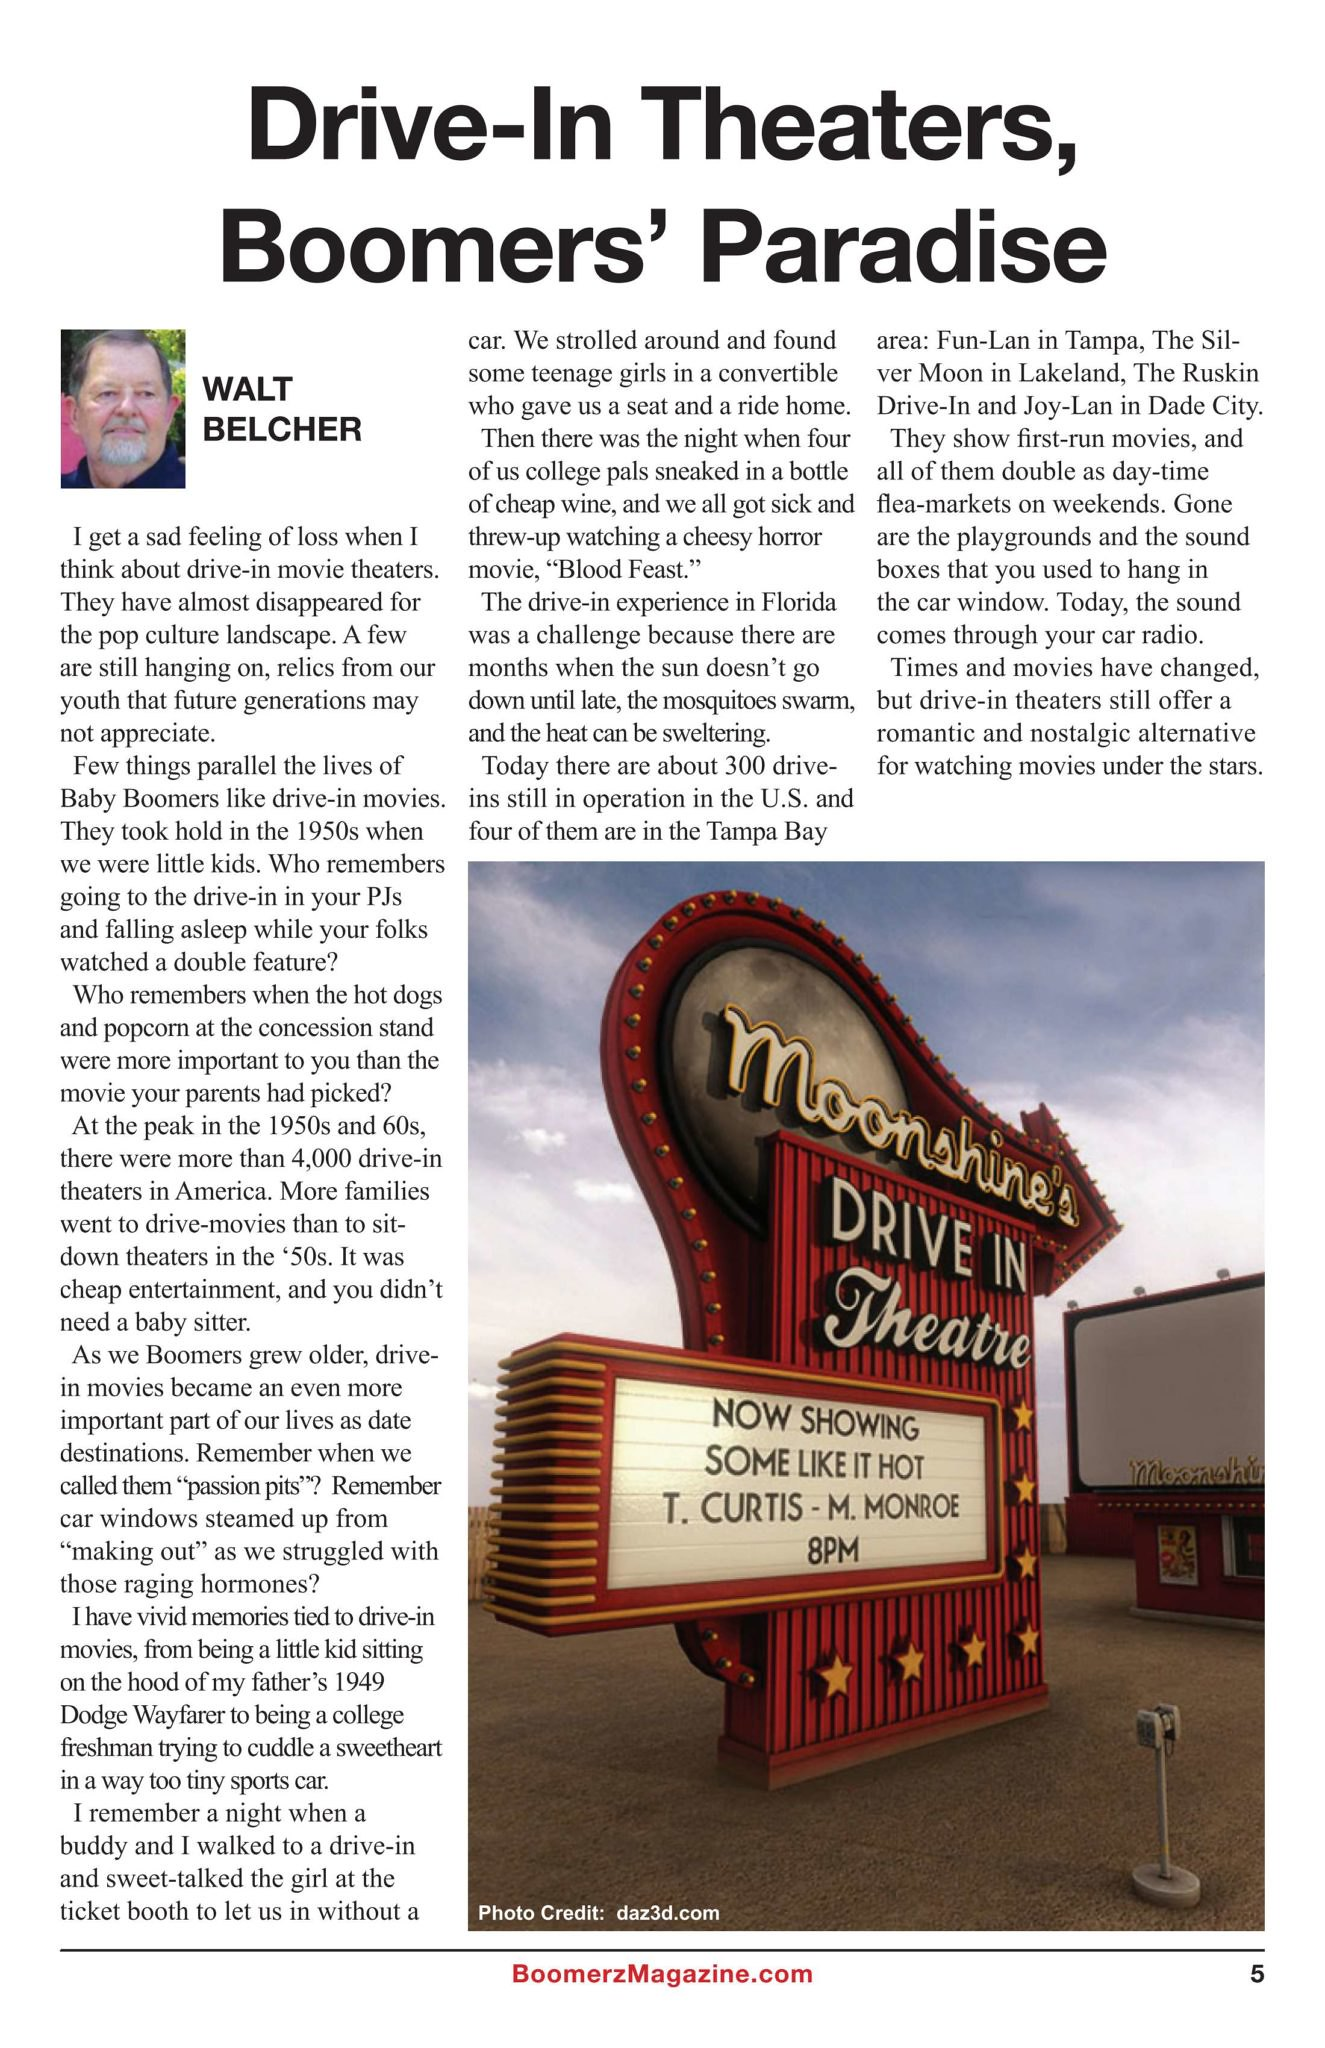 Boomerz Magazine 2018 November Drive In Theaters Boomers Paradise